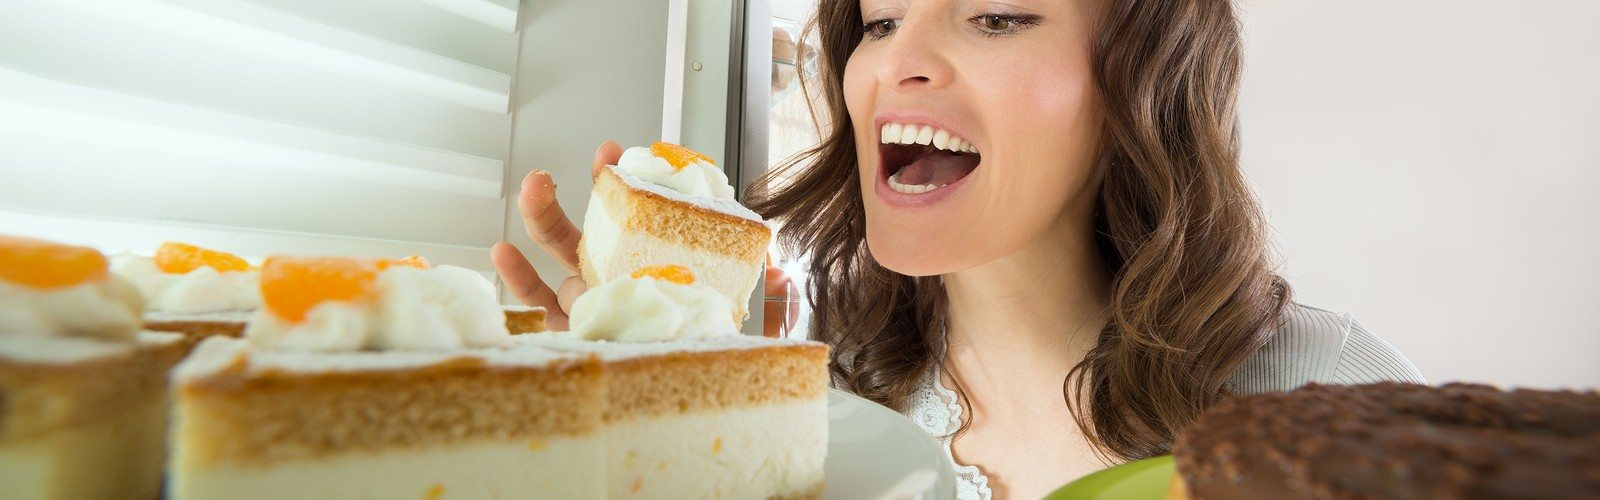 Hungry Young Woman Eating Slice Of Cake From Fridge At Home